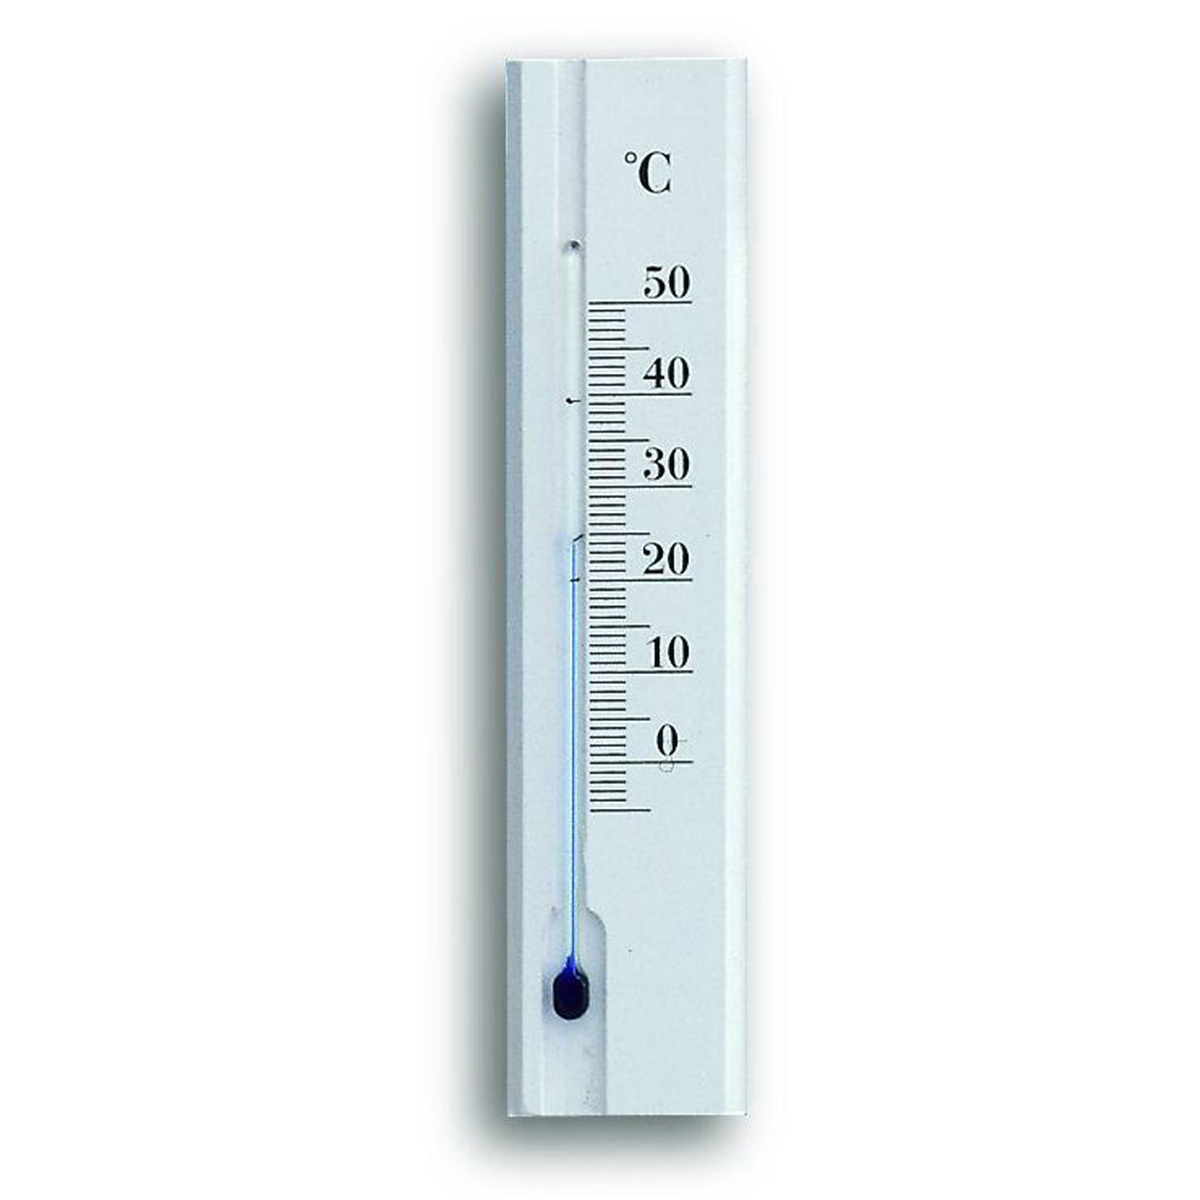 12-1032-09-analoges-innen-aussen-thermometer-buche-1200x1200px.jpg